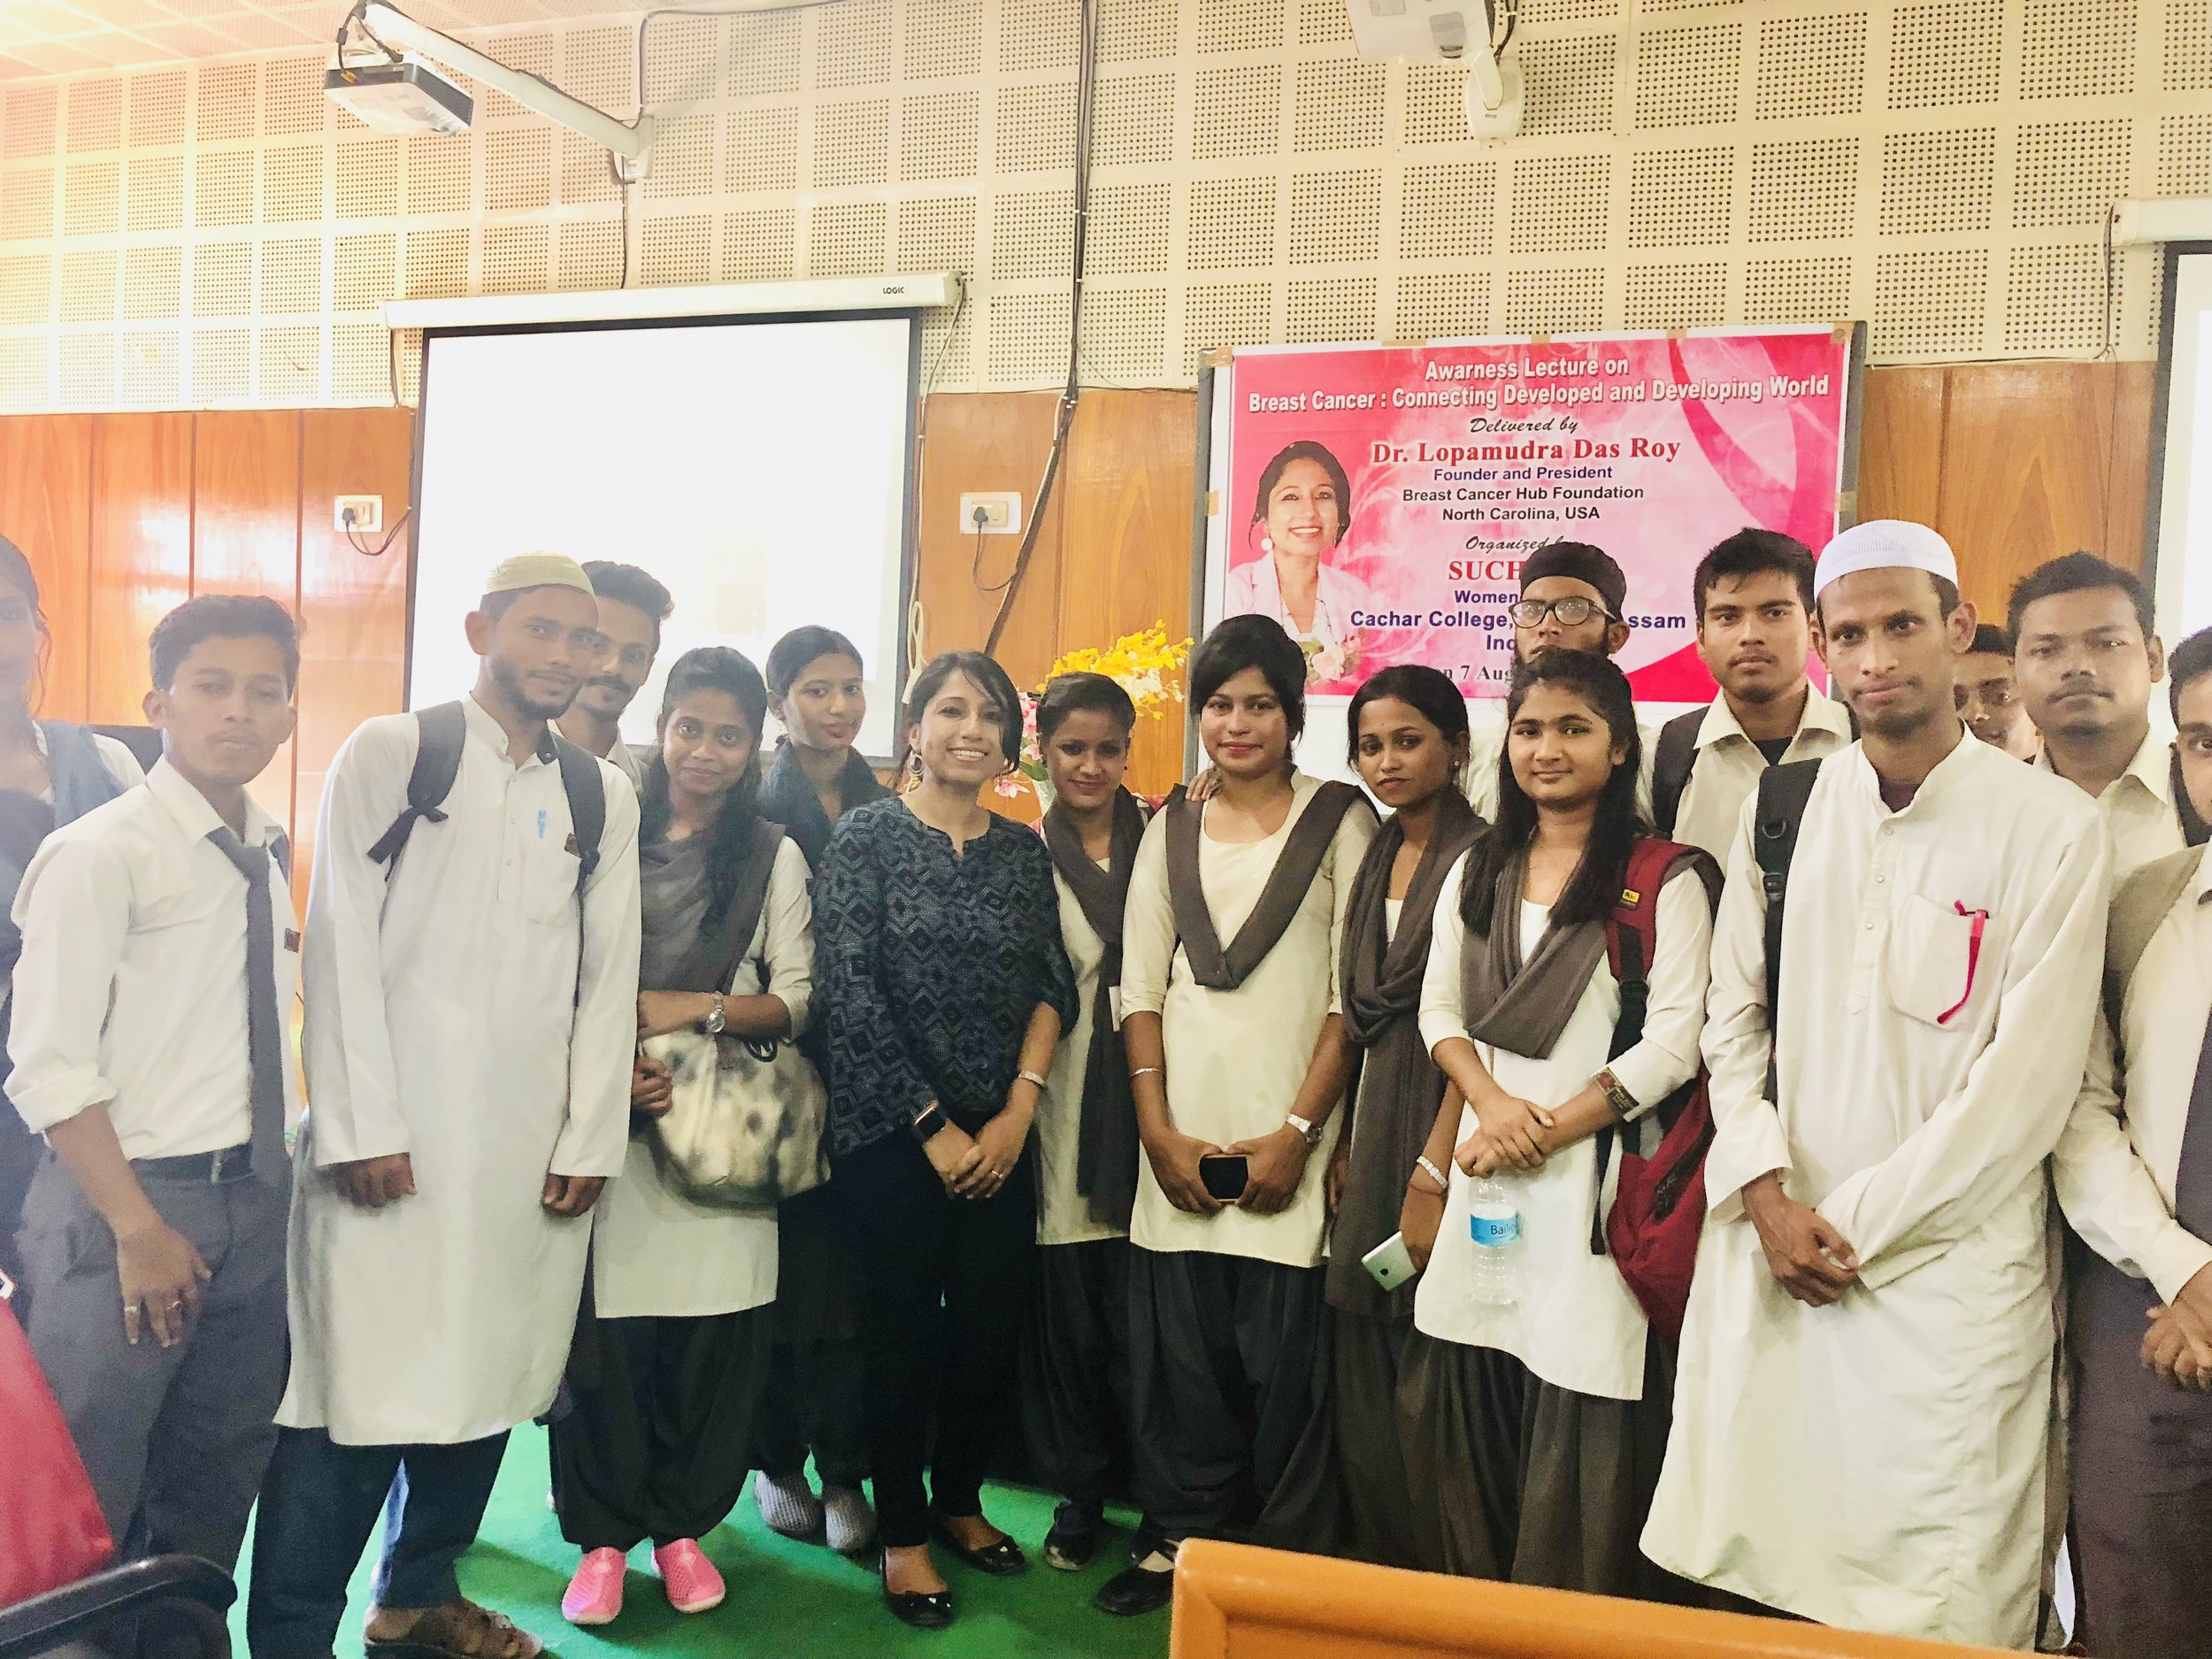 Session 1: Extremely thankful to the Students of Cachar College for your gracious presence and your interest and interactions. Thanks to students for coming forward to interact.